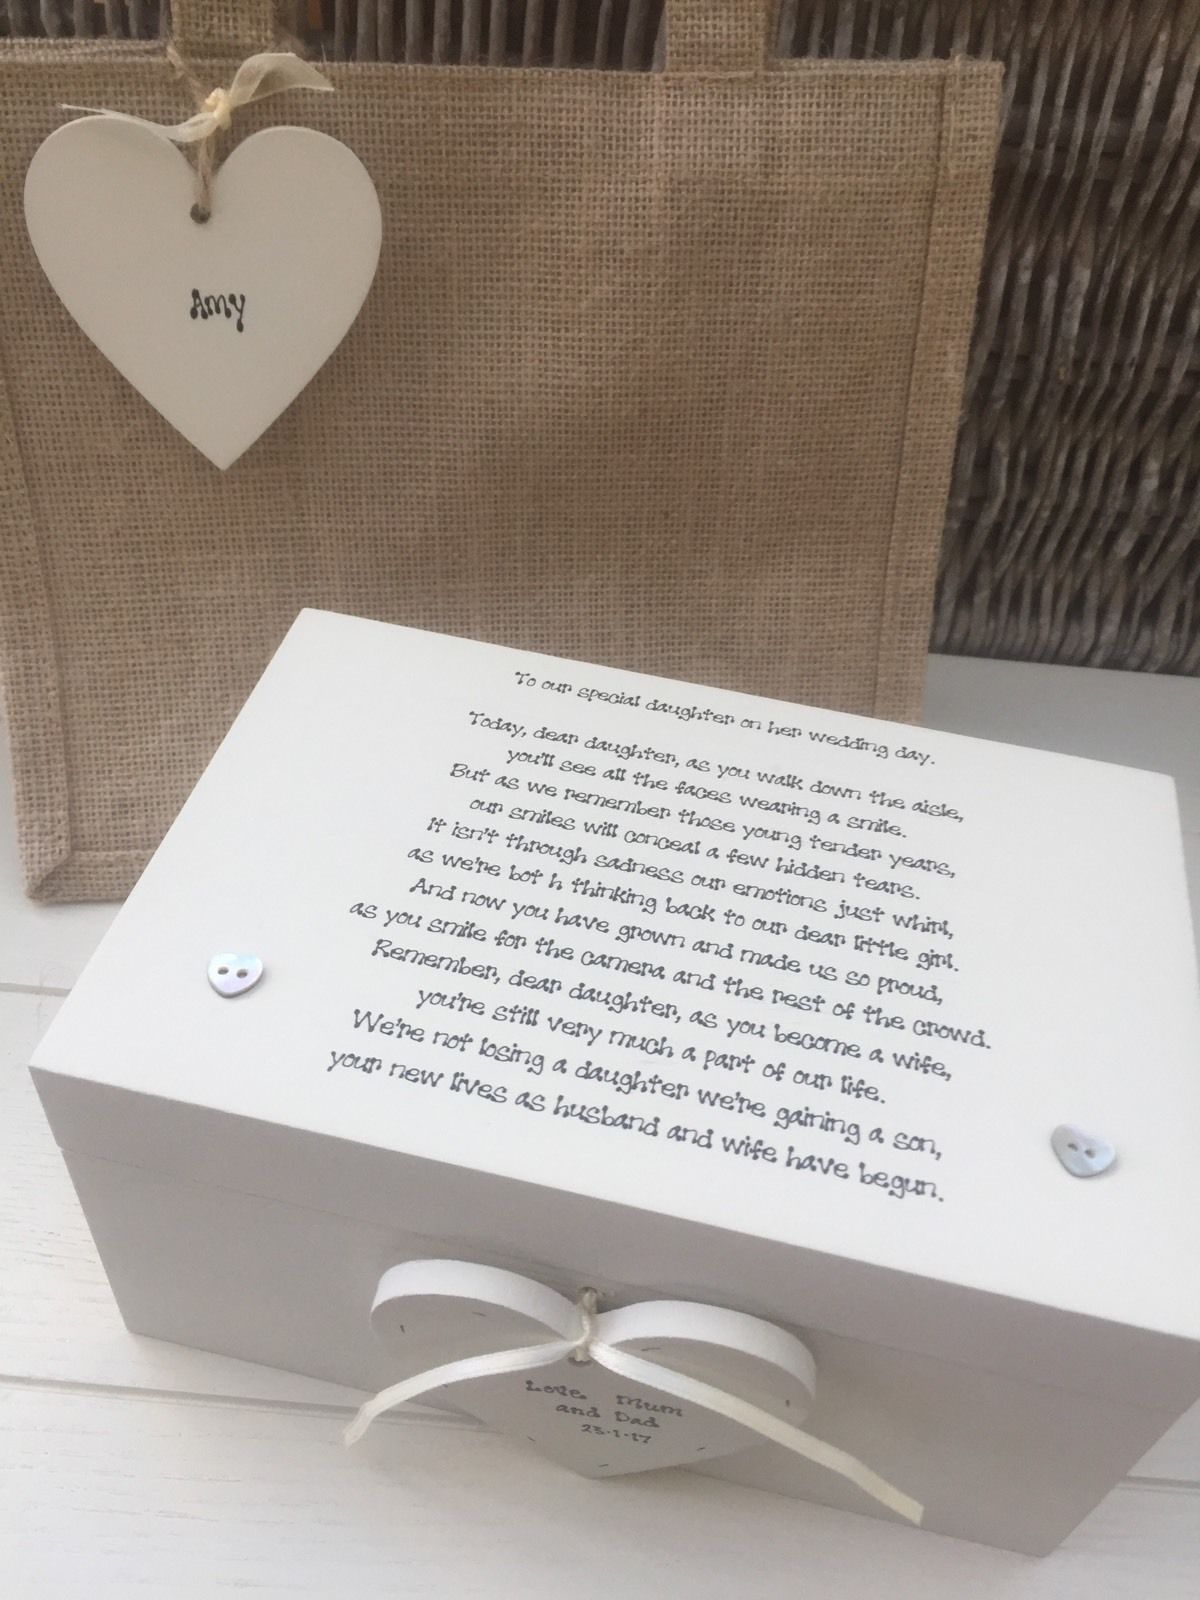 Gifts On Wedding Day For Bride: Shabby Personalised Chic Gift For A Special Daughter On